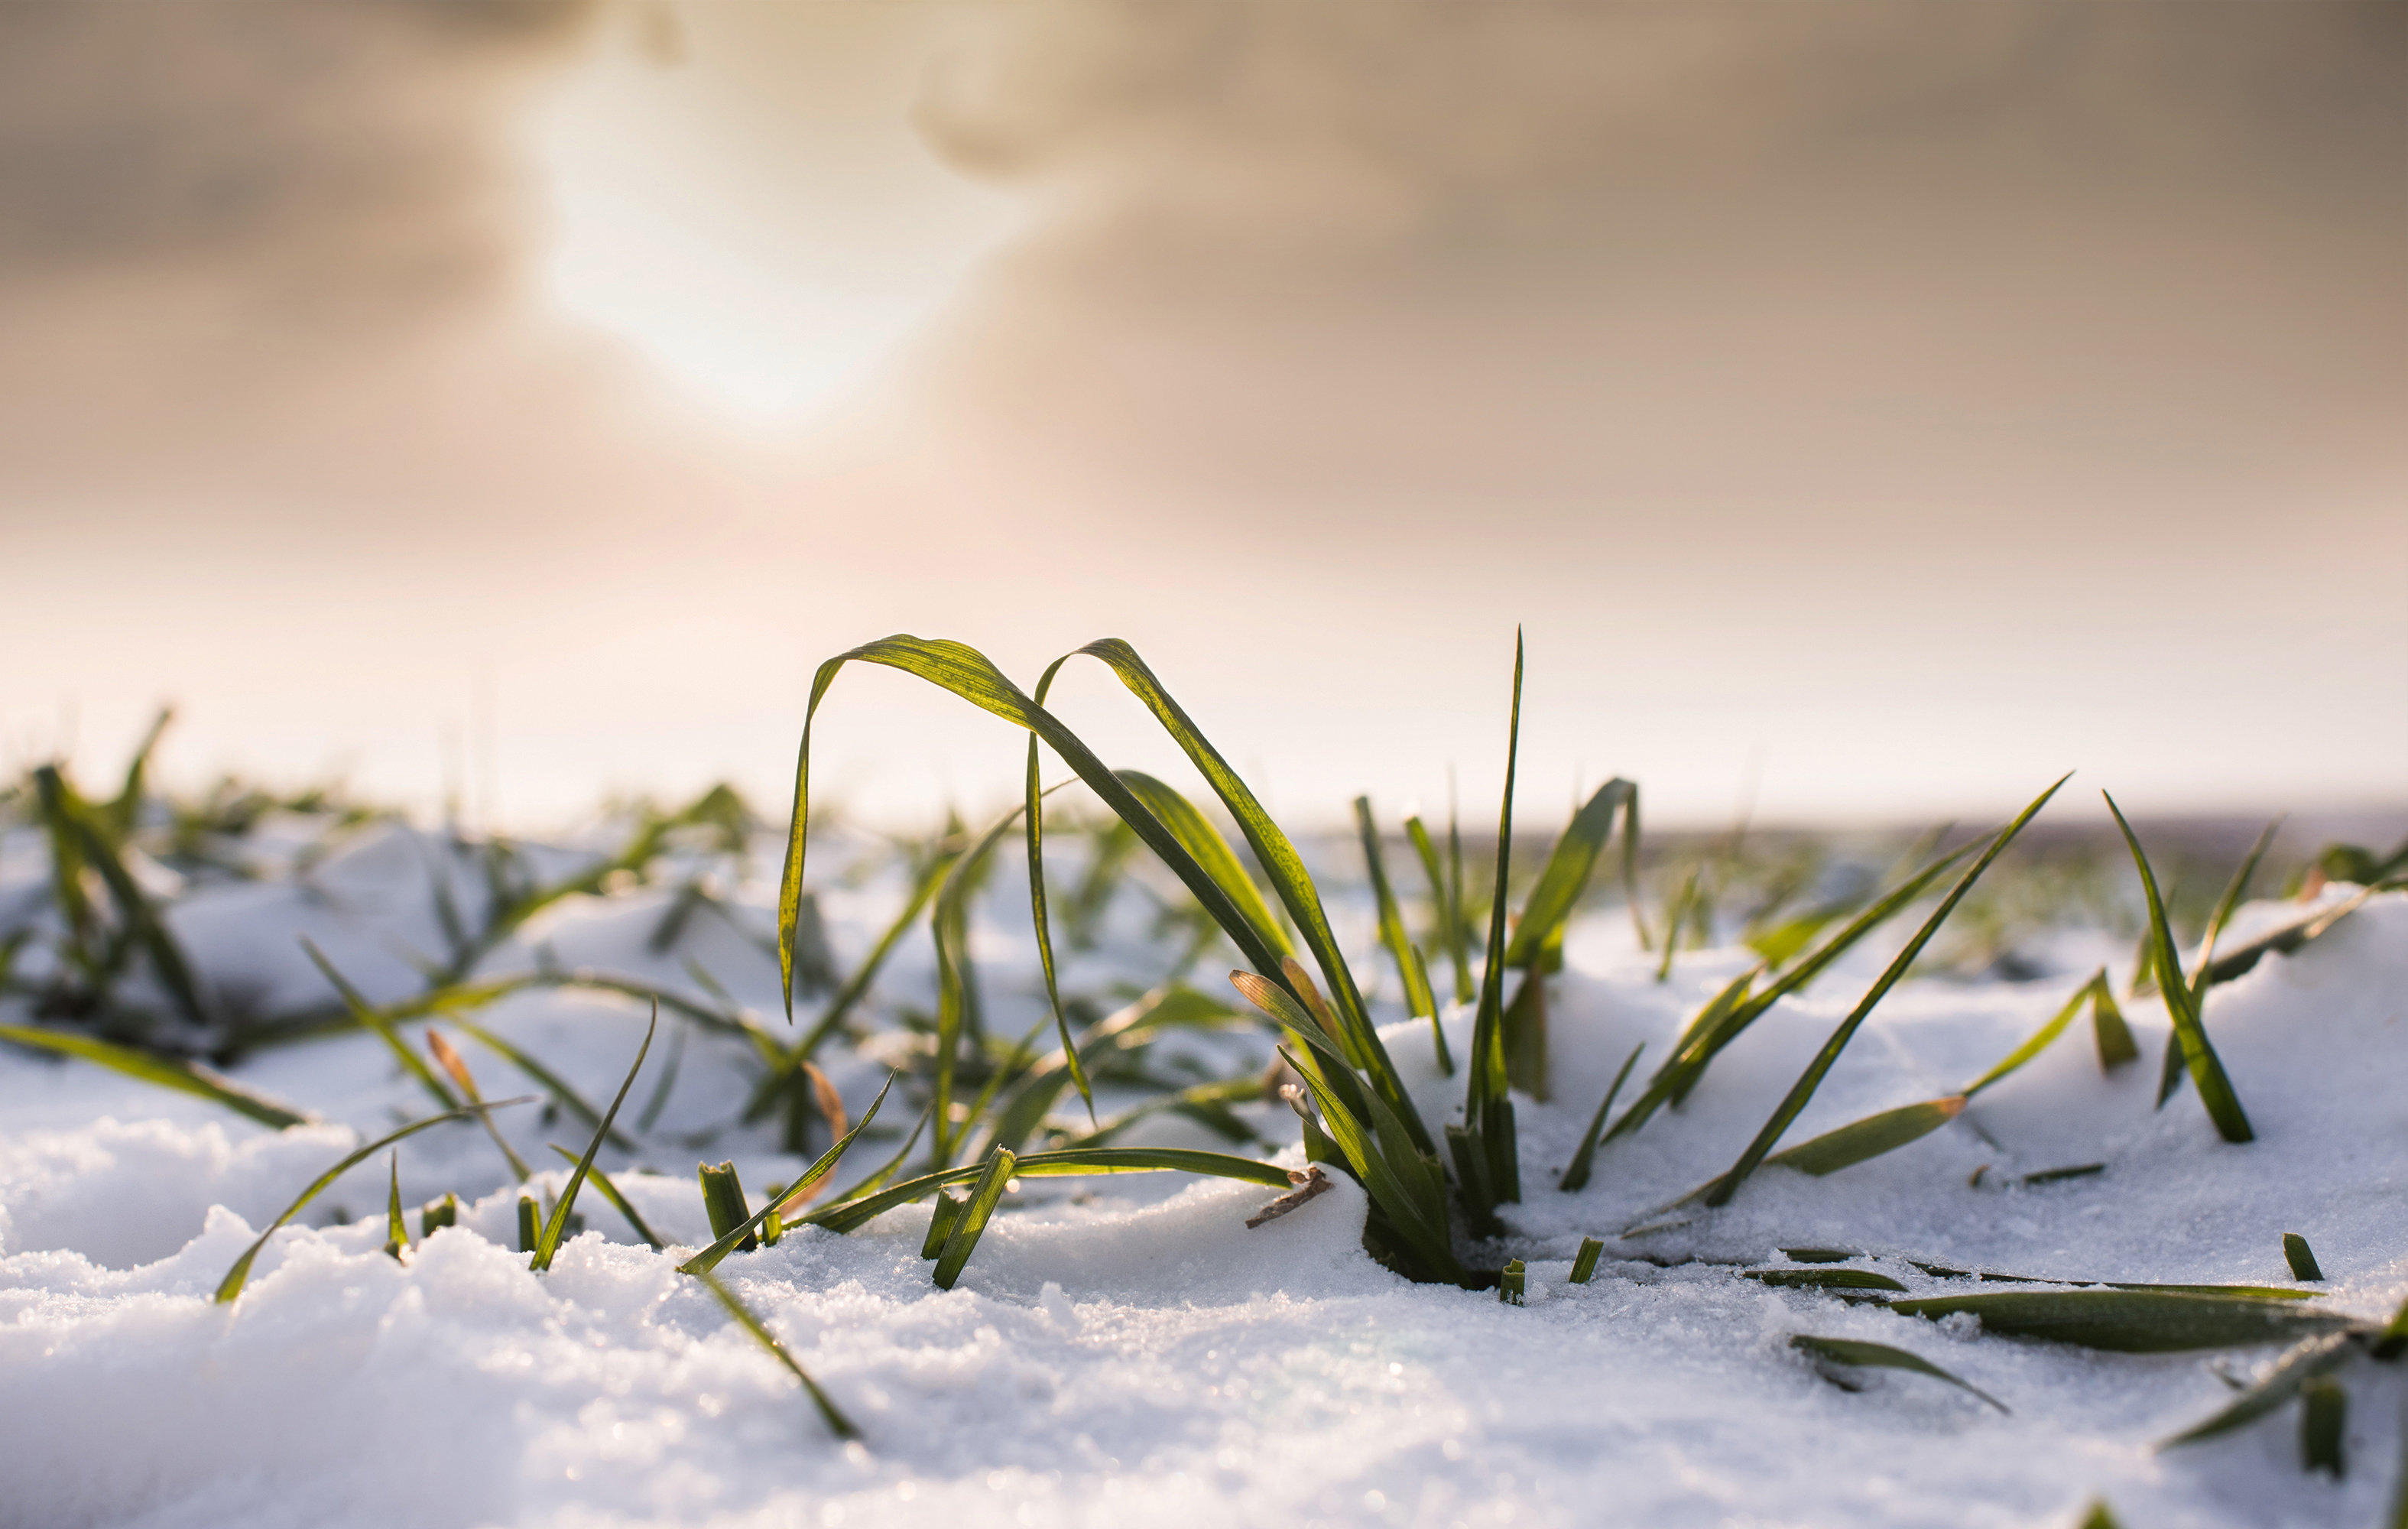 Walking in a winter wonderland…of green cover crops peeking through snow, fall-seeded small grains, and fields that can't wait to be frost-seeded soon.